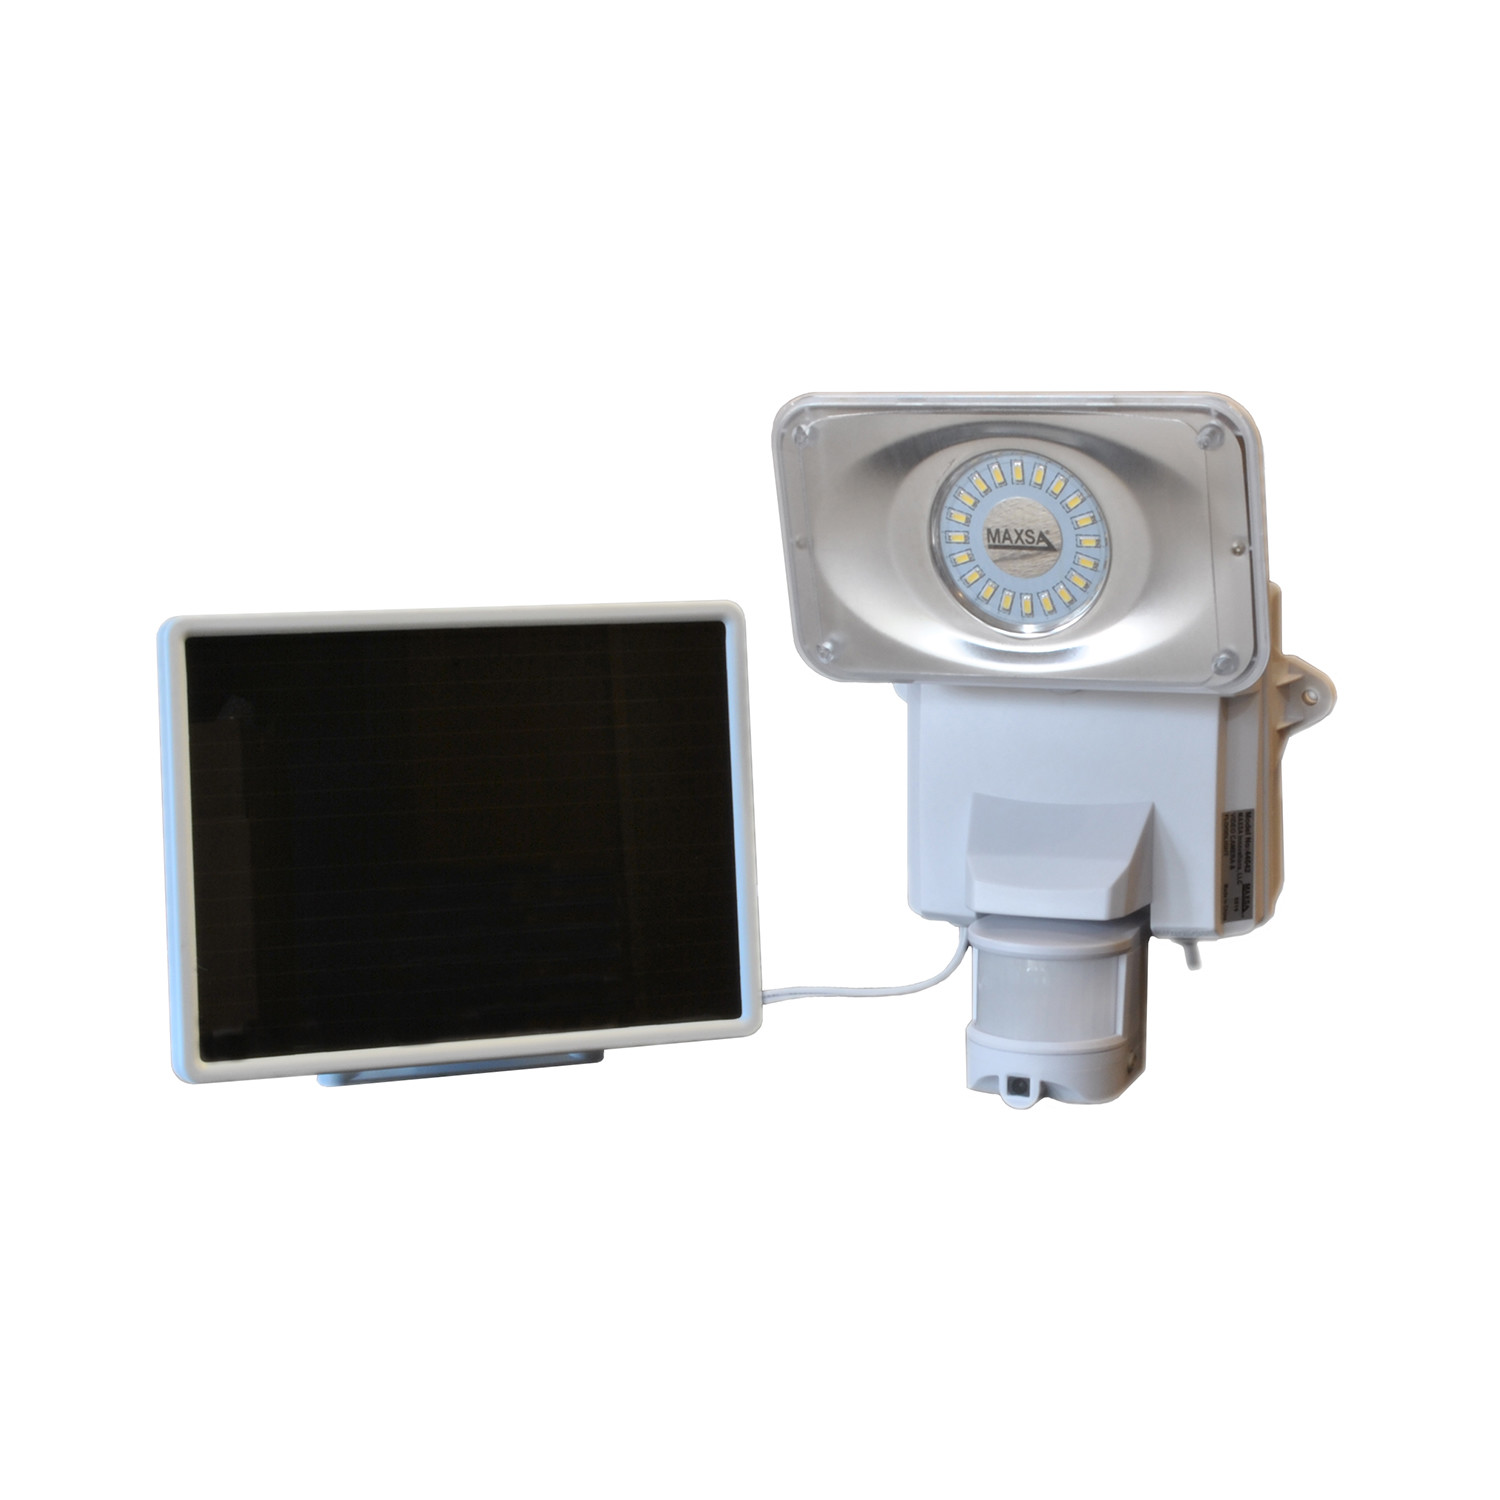 Best Of Motion Activated Flood Light